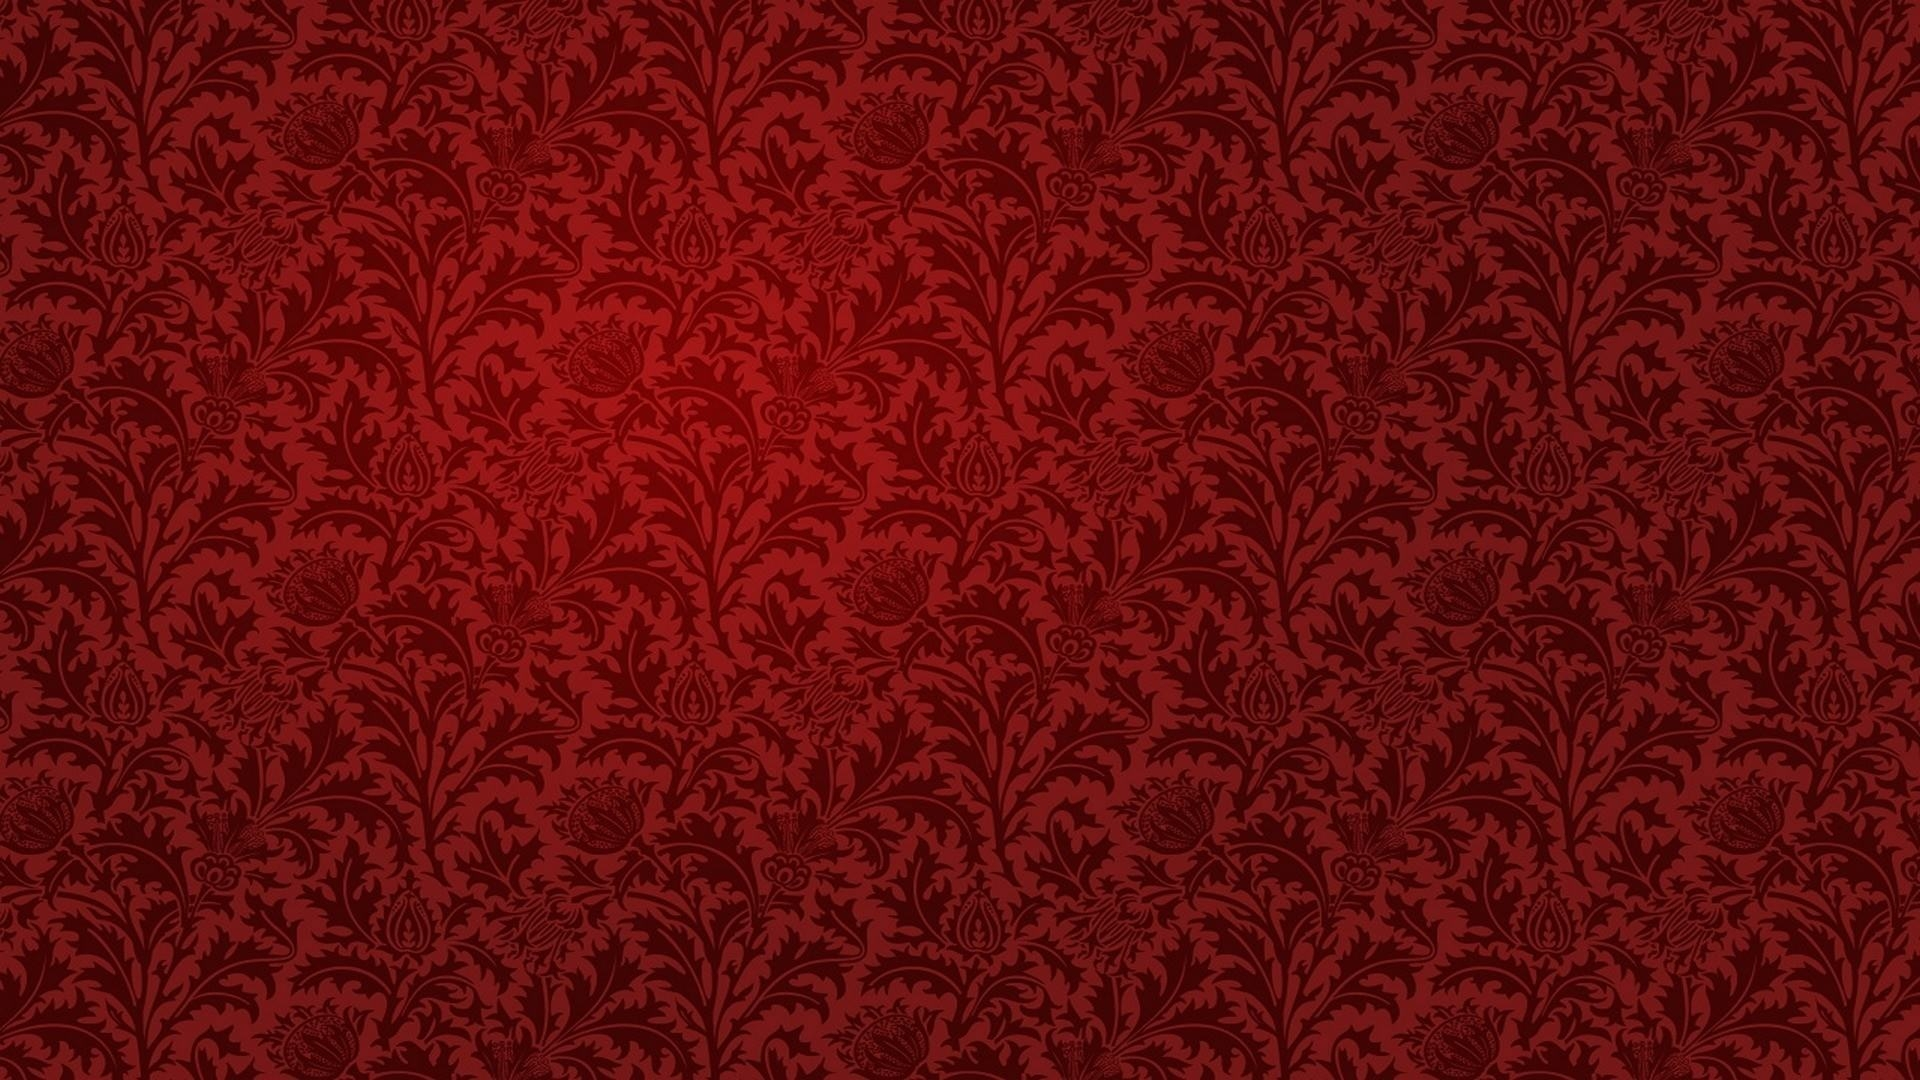 15 red floral wallpapers floral patterns freecreatives for Wallpaper pattern